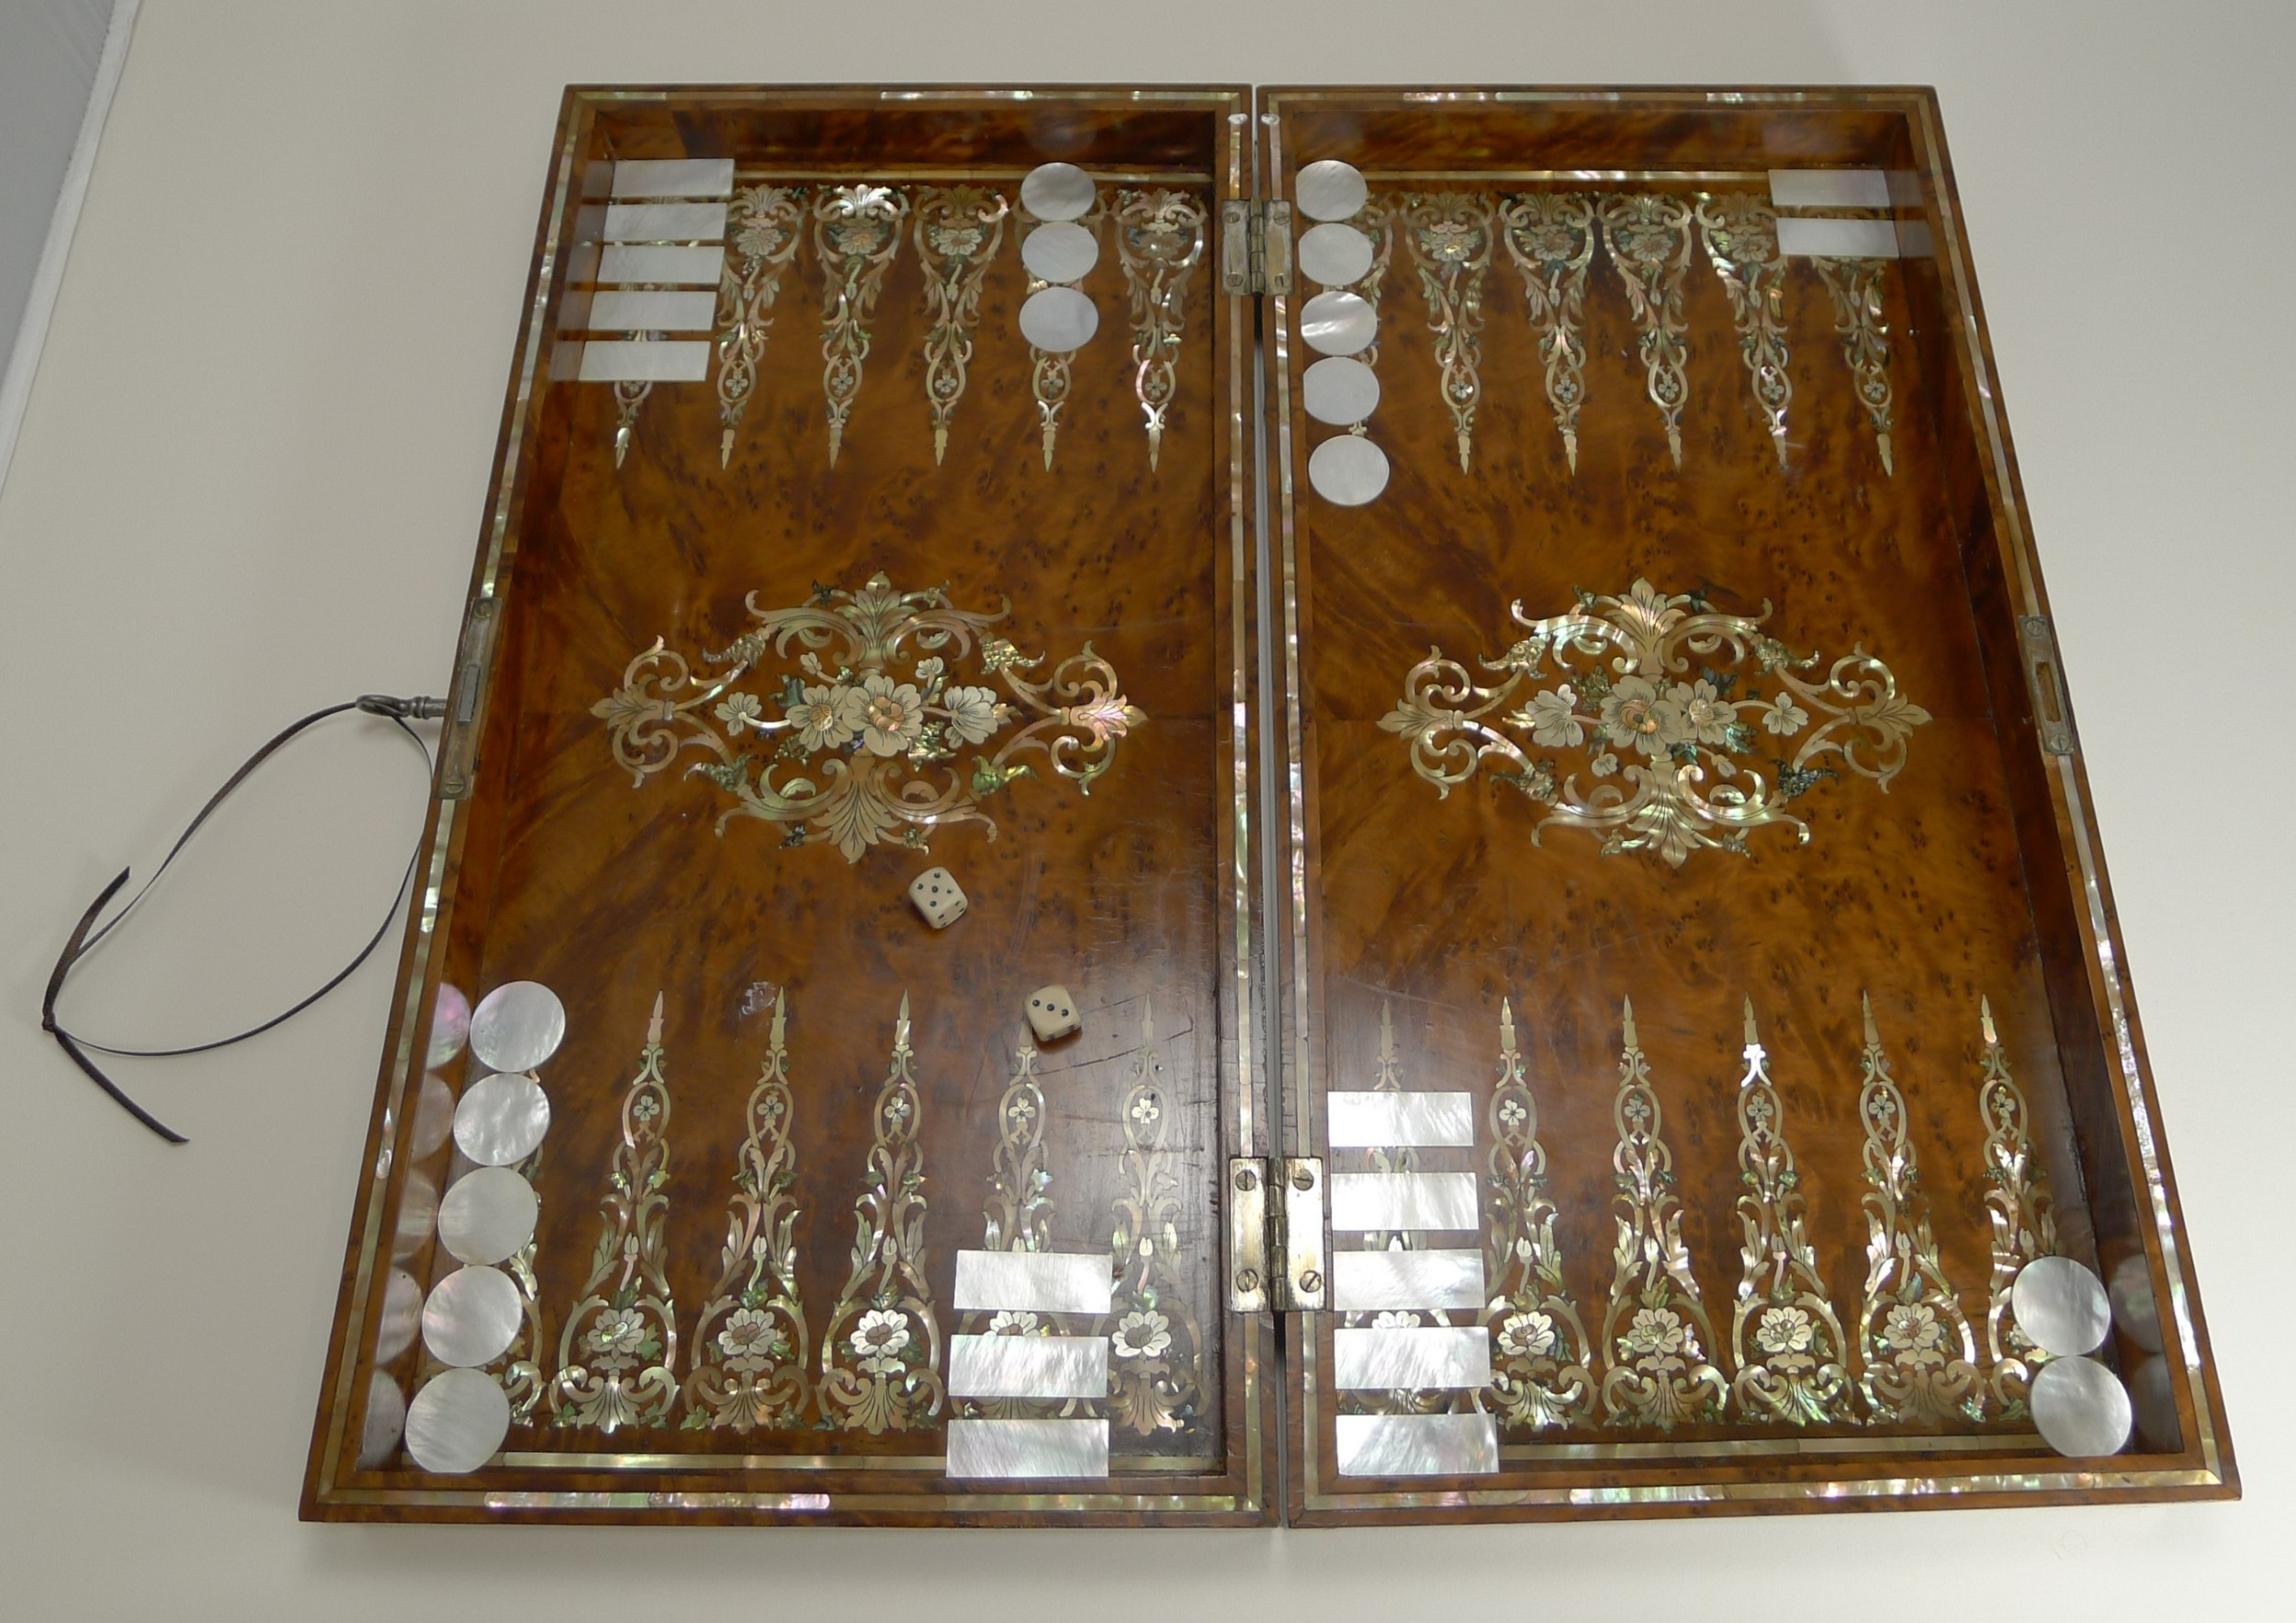 exquisite english mother of pearl inlaid amboyna backgammon board c1890